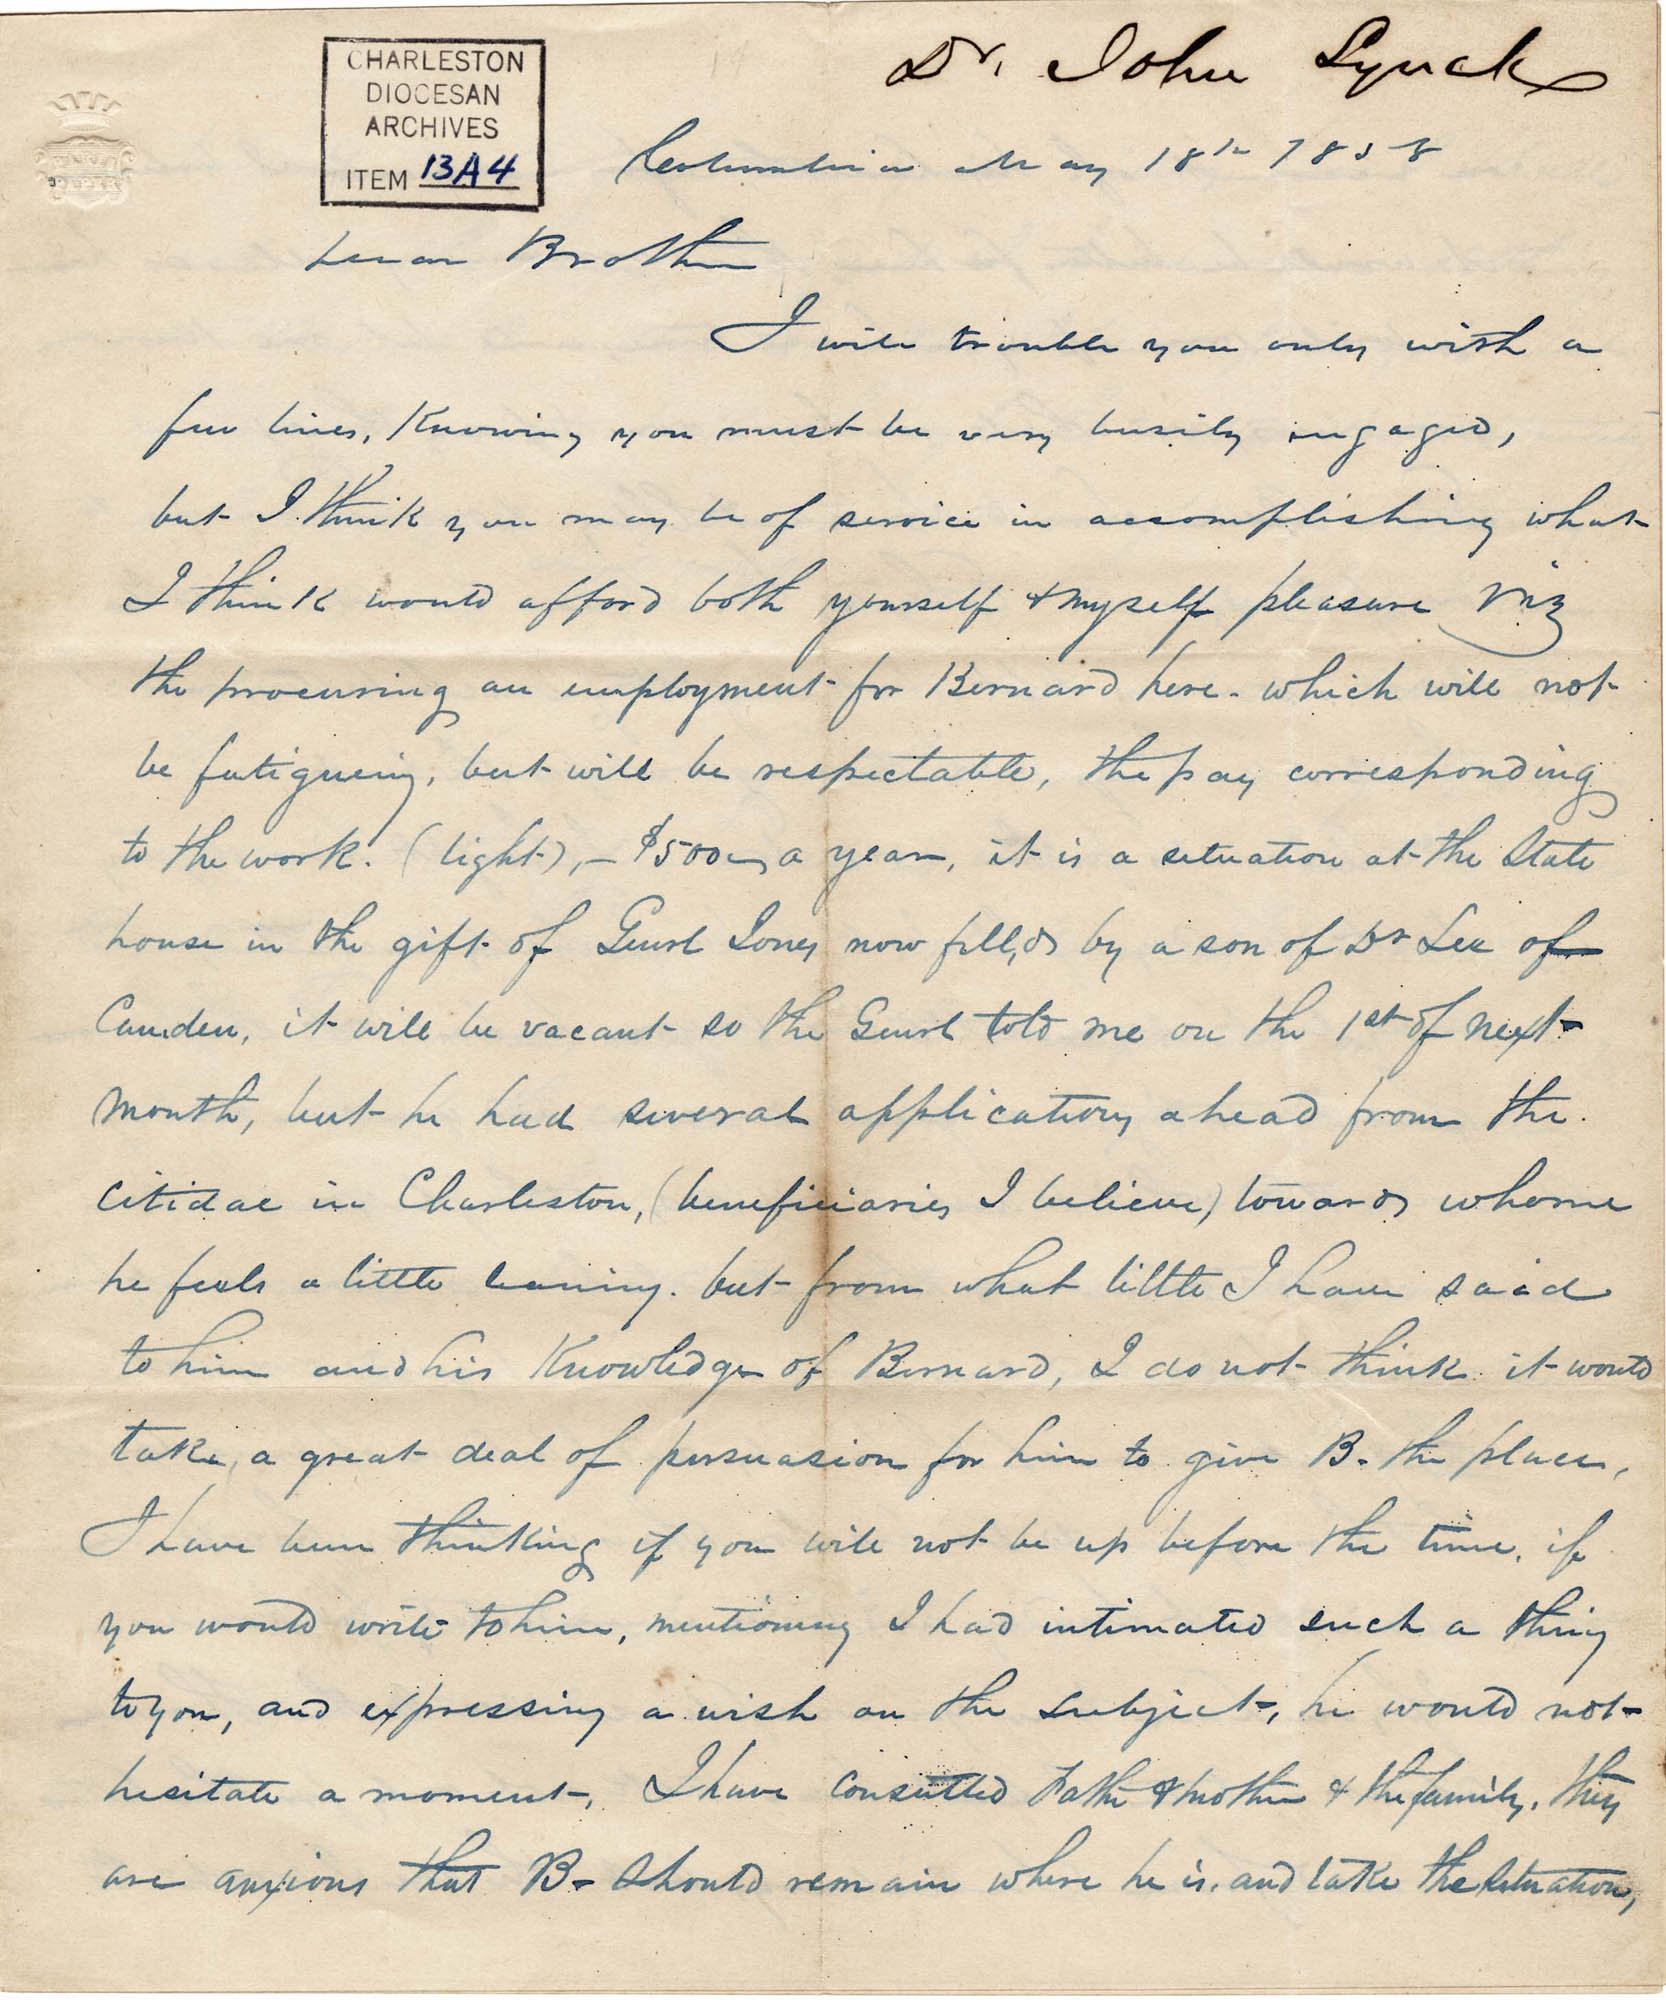 004. John Lynch to Bp Patrick Lynch -- May 18, 1858